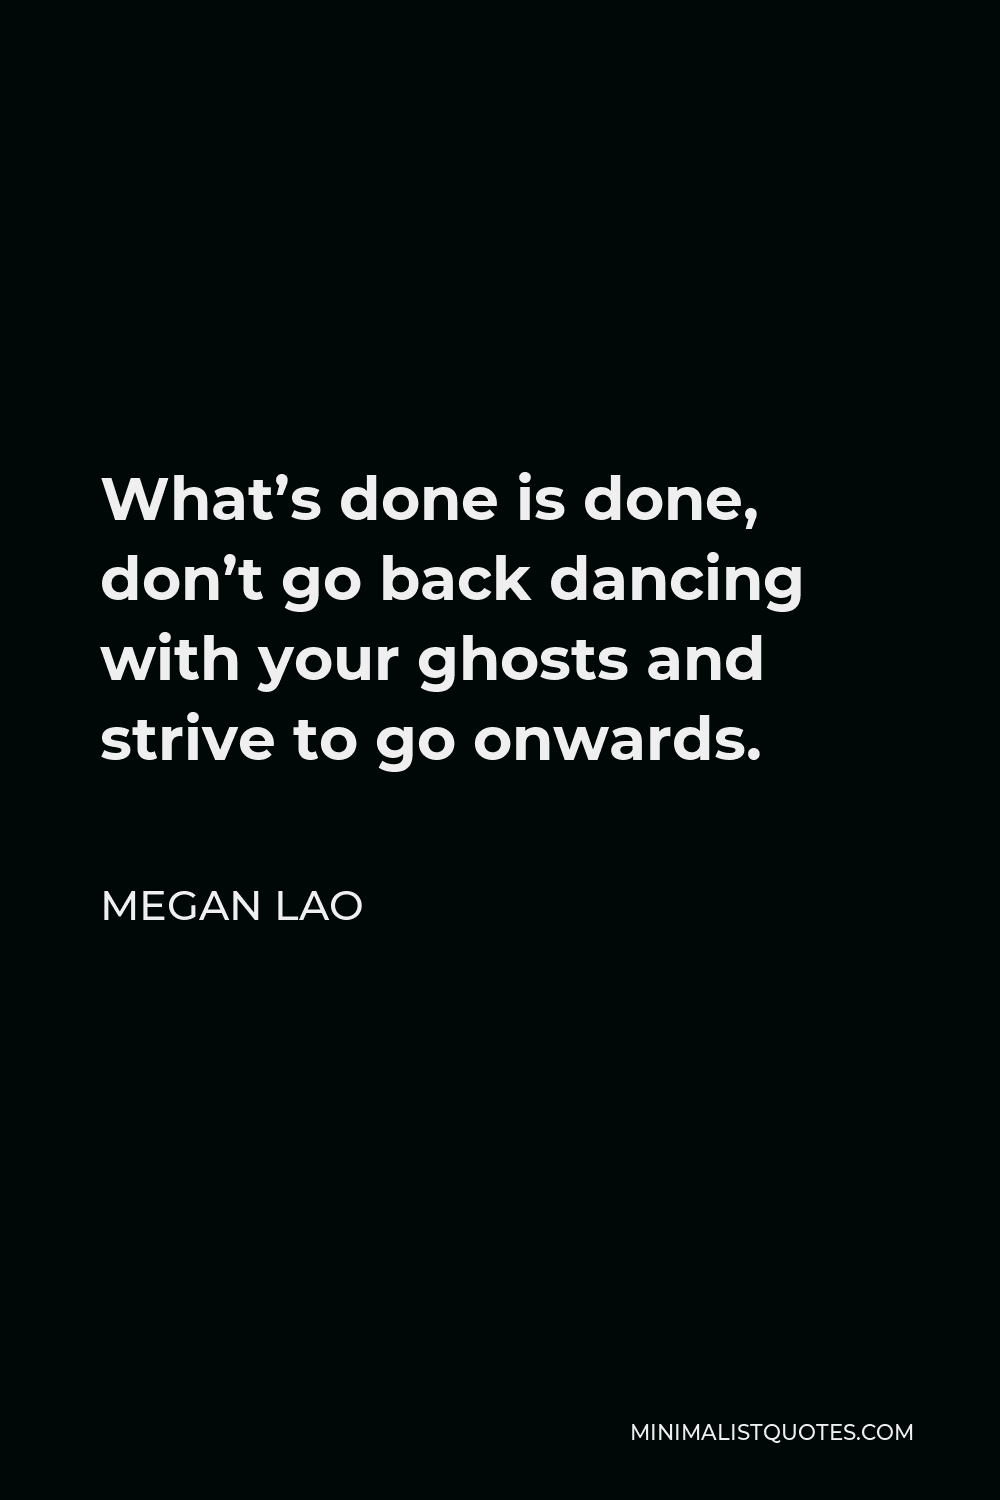 Megan Lao Quote - What's done is done, don't go back dancing with your ghosts and strive to go onwards.